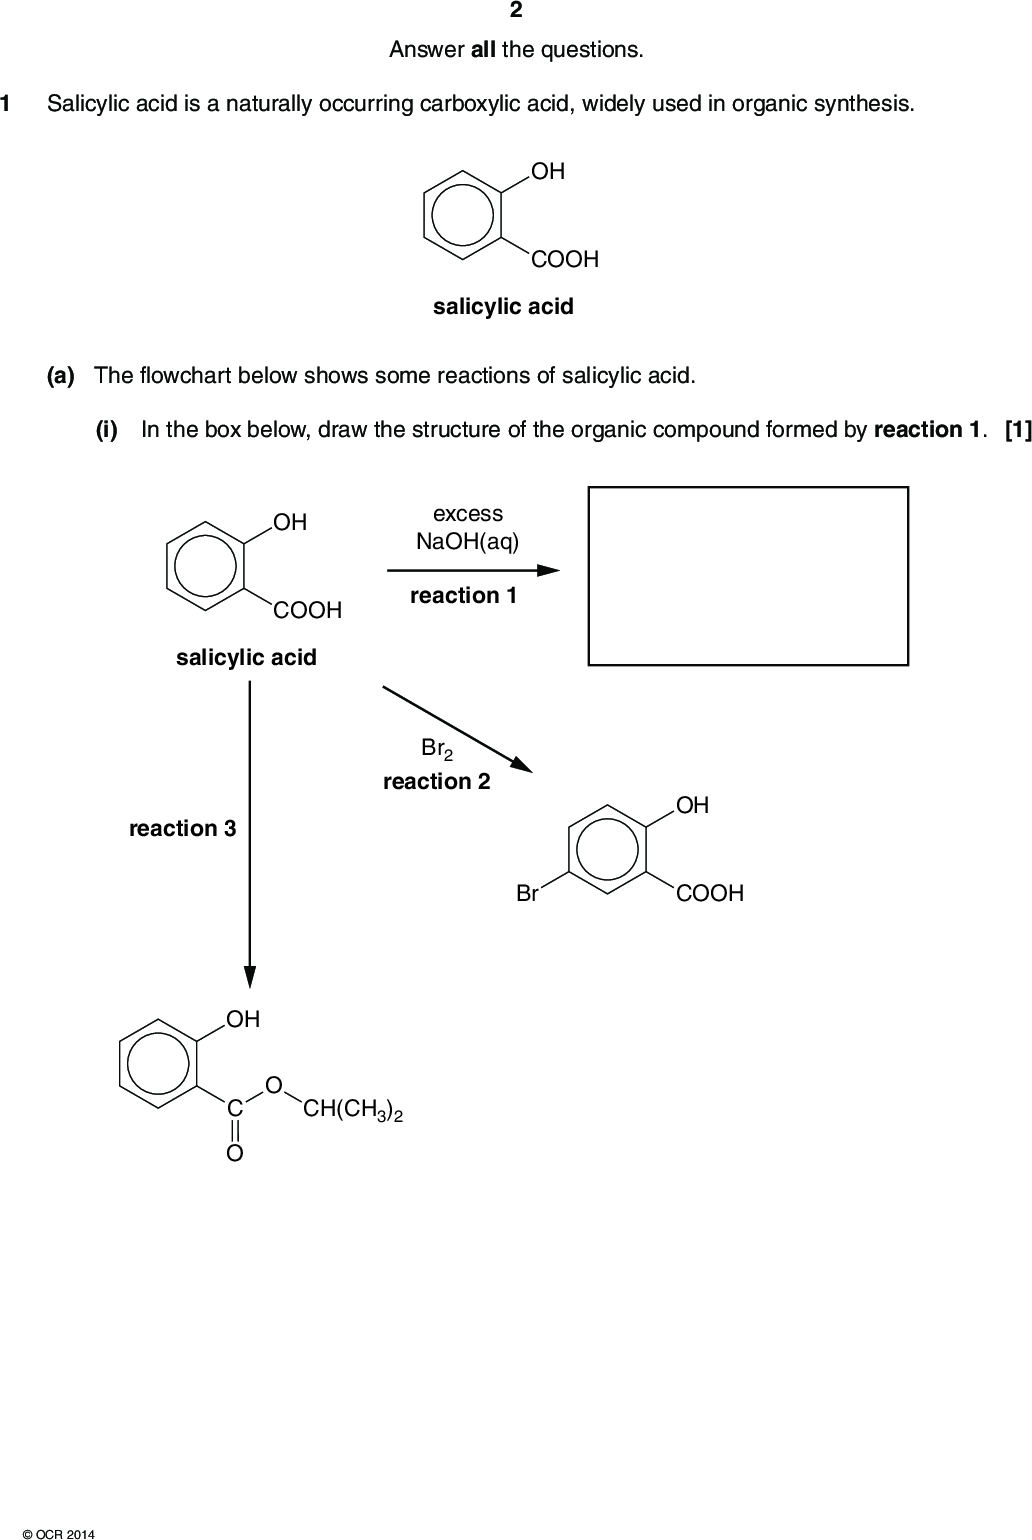 Answer all the questions. 1 Salicylic acid is a naturally occurring carboxylic acid, widely used in organic synthesis. OH COOH salicylic acid (a) The flowchart below shows some reactions of salicylic acid. (i) In the box below, draw the structure of the organic compound formed by reaction 1. [1] OH COOH excess NaOH(aq) reaction 1 salicylic acid Br2 reaction 2 reaction 3 OH Br COOH OH CH(CH3)2OCR 2014<br />  (ii) Describe what would be observed during reaction 2.[1] (iii) Write a chemical equation to represent reaction 2. (iv) State the reagents and conditions in reaction 3.[1] (b) Bromine reacts more readily with salicylic acid than with benzene. [1]OCR 2014 (i) Outline the mechanism for the bromination of salicylic acid shown in reaction 2 in the flowchart. A halogen carrier is not required for this reaction. The electrophile is Br2. [4] Turn over<br />  (ii) Explain why bromine reacts more readily with salicylic acid than with benzene. In your answer, you should use appropriate technical terms, spelled correctly.[3]OCR 2014<br />  (c) Mesalazine is a drug that can be synthesised from salicylic acid in two steps. OH COOH salicylic acid two-step synthesis OH H2N COOH mesalazine (i) Suggest a two-step synthesis to prepare mesalazine from salicylic acid. For each step state the reagents used,write a chemical equation. (ii) Mesalazine reacts with acids to form salts. Explain how mesalazine is able to react with acids.[1] [4]OCR 2014 Turn over<br />  (iii) Mesalazine reacts in another two-stage process as shown below. In the boxes, draw the structures of organic compounds A and B. [2] OH NaNO2 and HCl H2N COOH &lt; 10 C mesalazine compound A NaOH(aq) followed by neutralisation compound B OH OH COOH (d) Salicylic acid can be used to form a condensation polymer similar to Terylene. OH COOH salicylic acid (i) Explain what is meant by the term condensation polymer.[1]OCR 2014<br />  (ii) The repeat unit of Terylene is shown below. C O CH2 CH2 Terylene Draw the skeletal formulae of two monomers that can be used to form Terylene. (iii) Salicylic acid reacts with 3-hydroxypropanoic acid to form a mixture of condensation polymers. To form one polymer, the two monomers react in equal quantities. Draw the repeat unit of this polymer, displaying the link between the monomer units. [2] [1] [Total: 22]OCR 2014 Turn over<br />